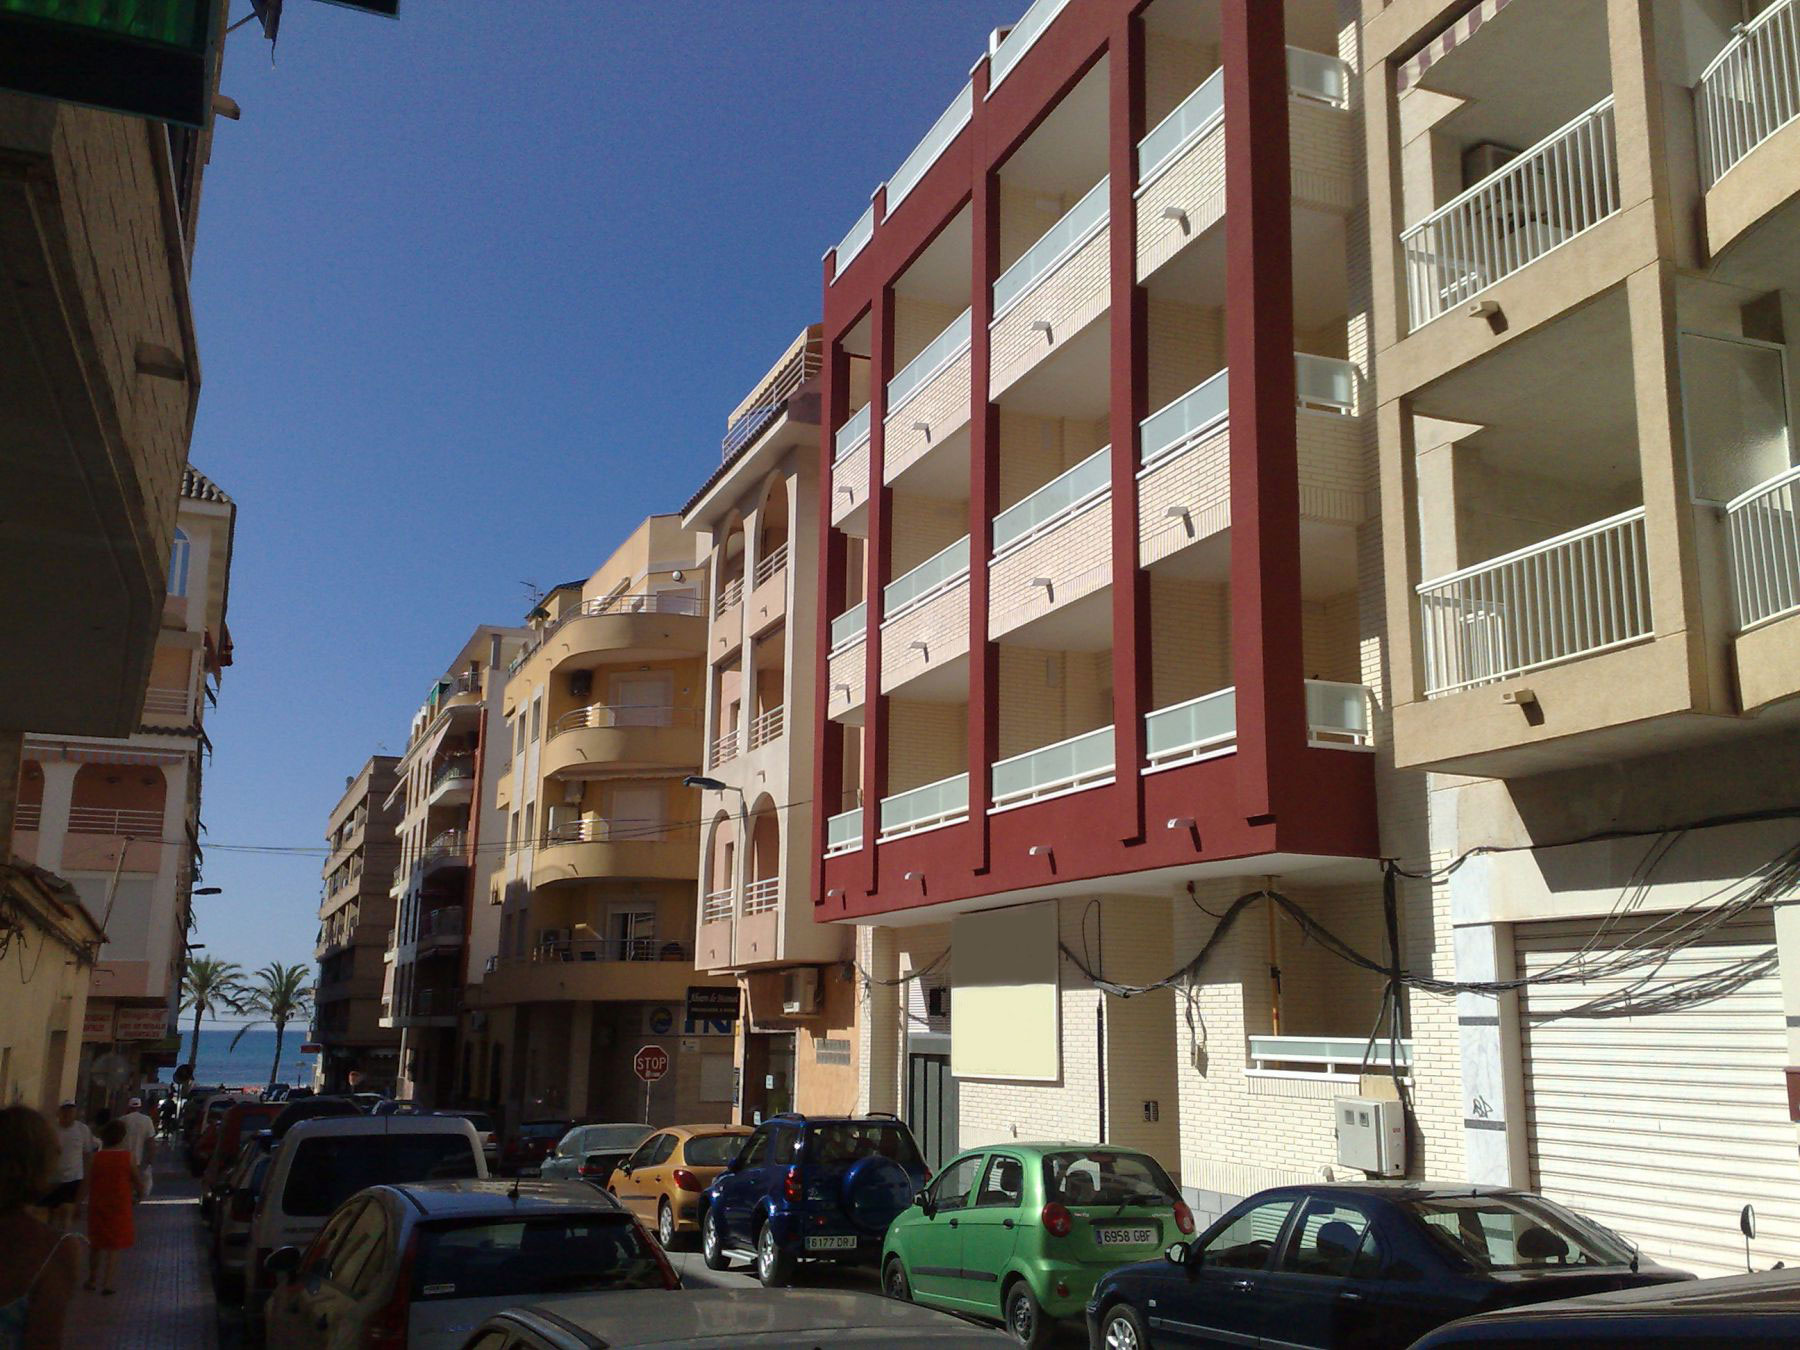 1 or 2 Bedrooms Apartments For Sale in Torrevieja Near El Cura Beach